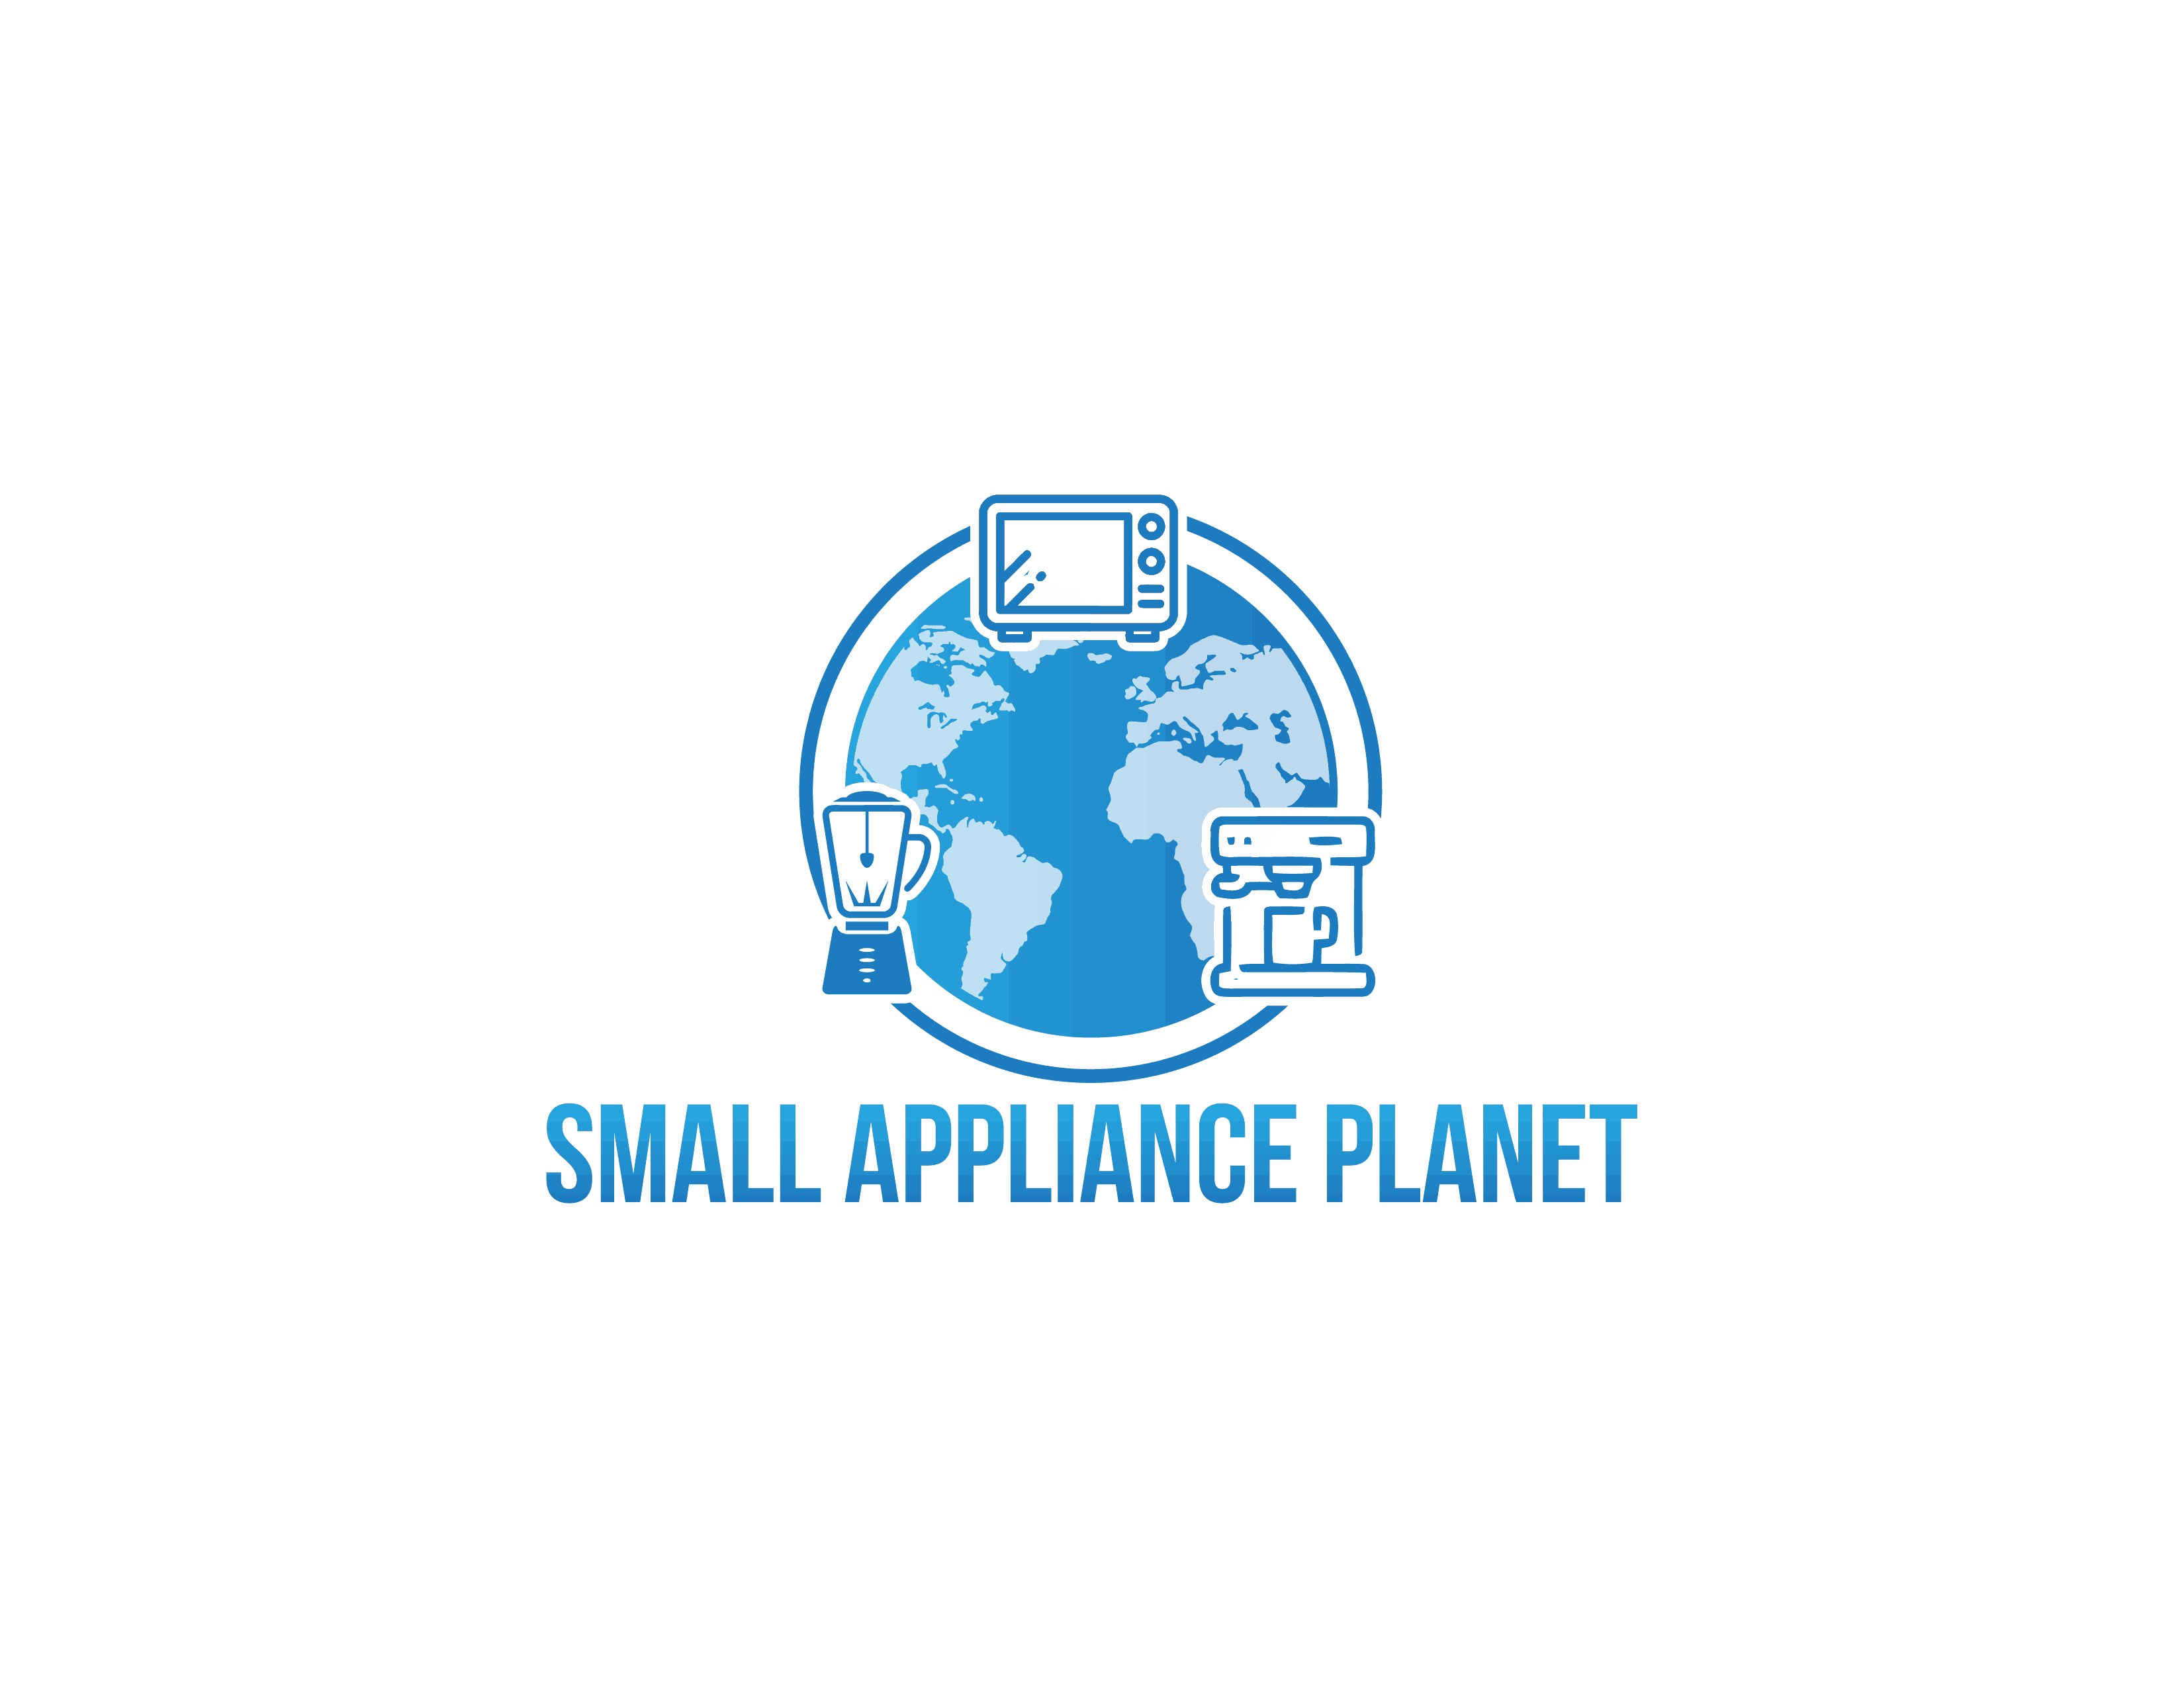 Small Appliance Planet